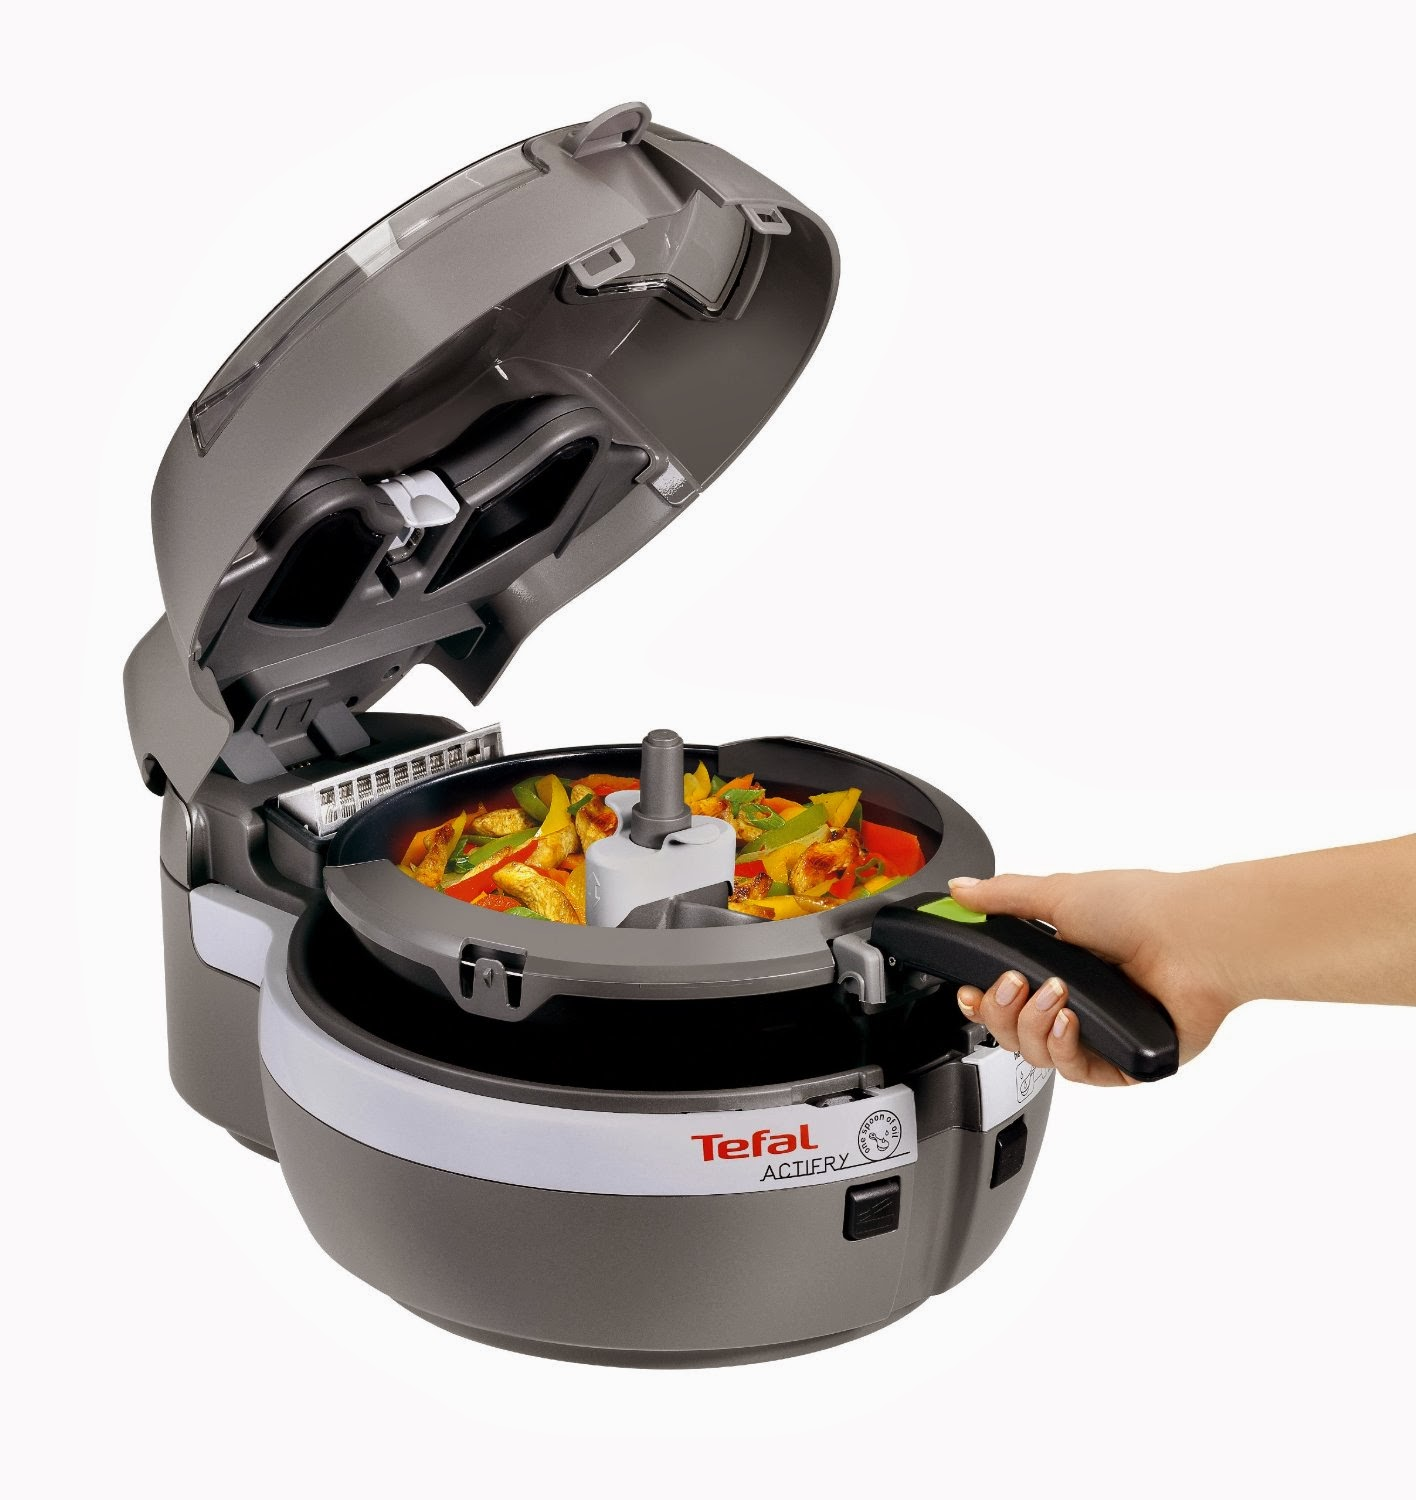 tefal actifry 2 in 1 instruction manual